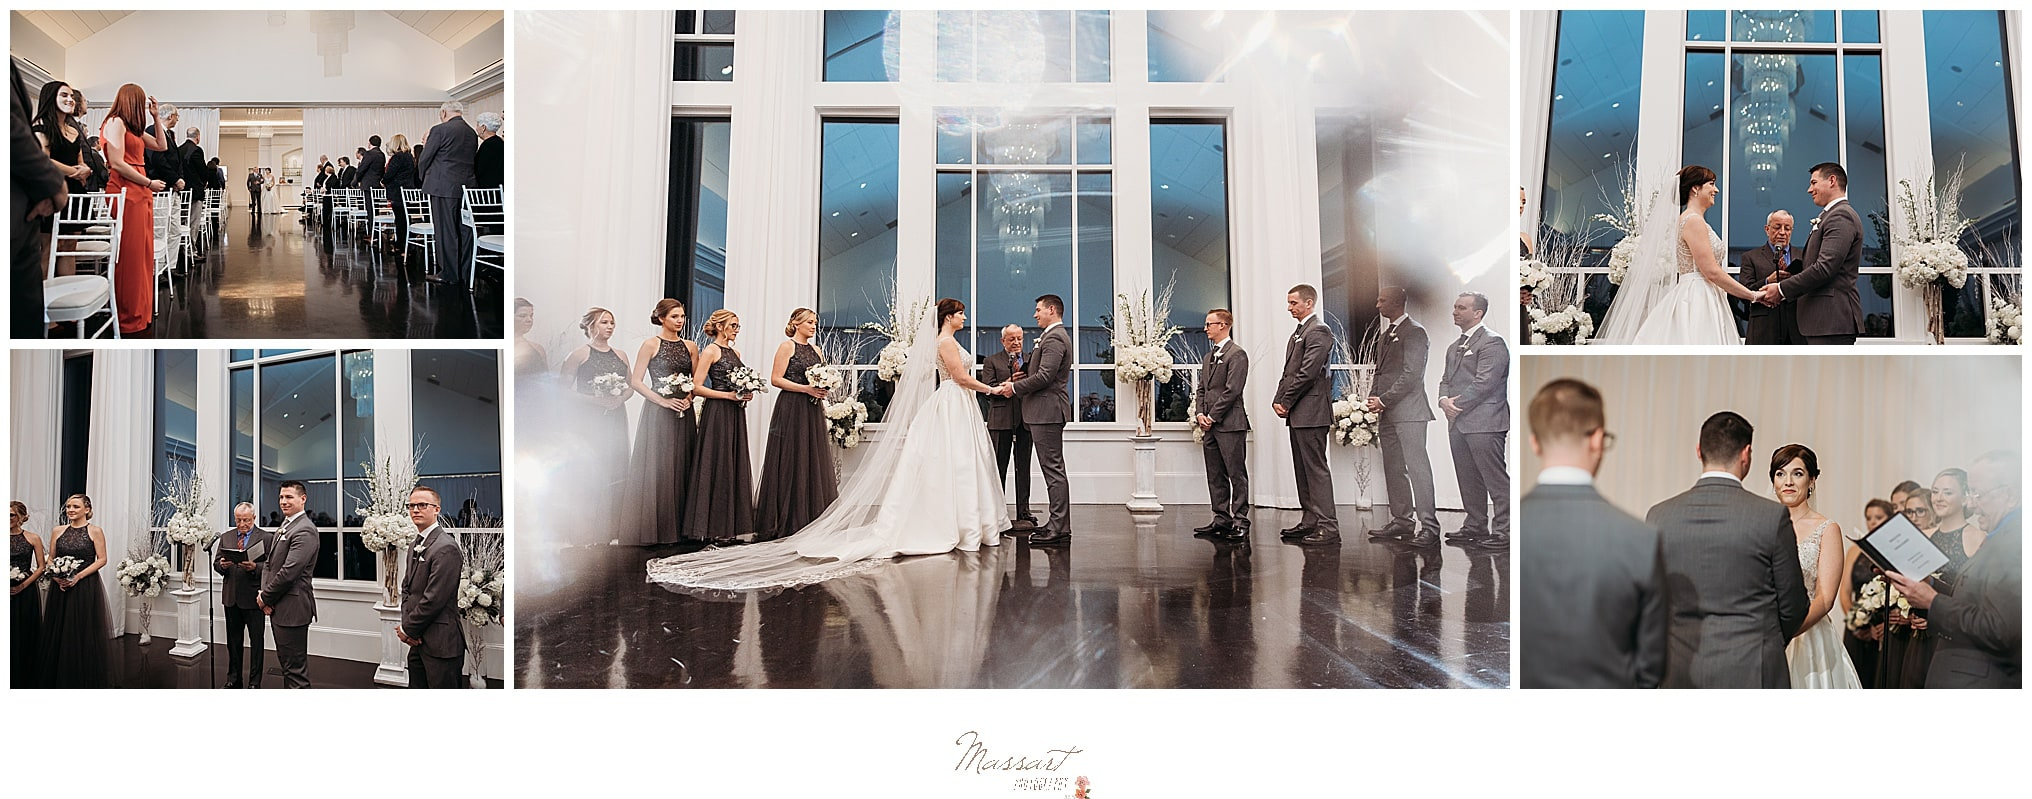 bride and groom at wedding ceremony creative photography by Massart Photography